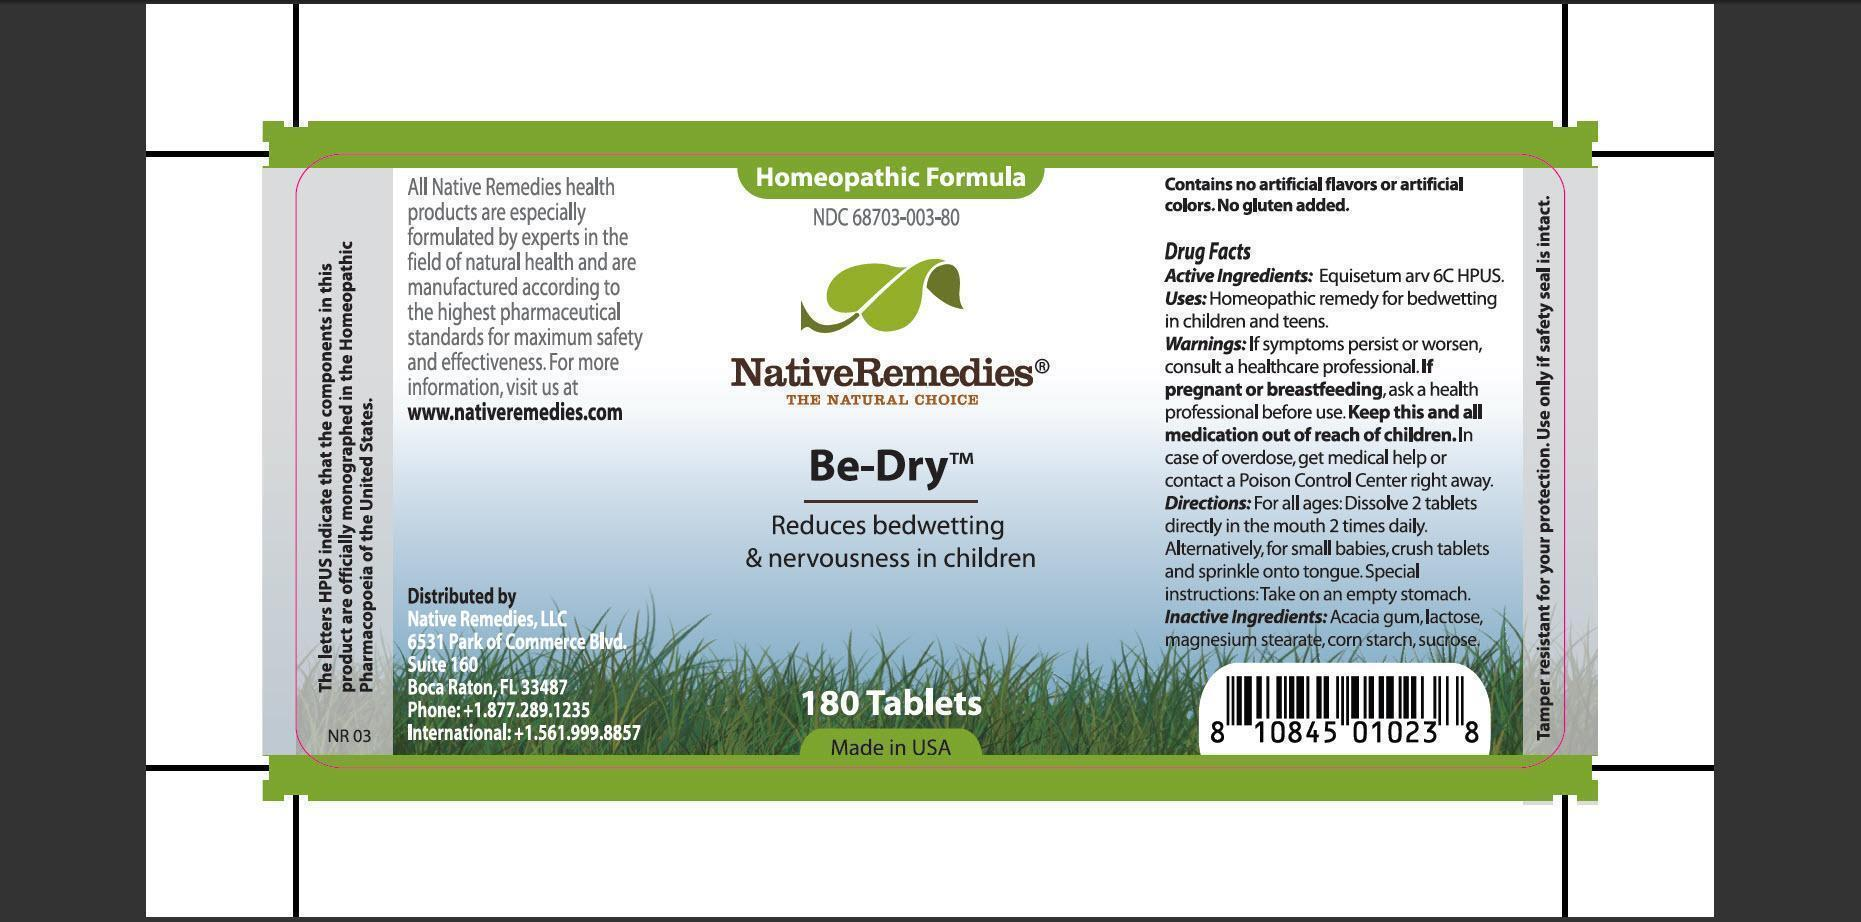 Be-dry (Equisetum Arv) Tablet [Native Remedies, Llc]